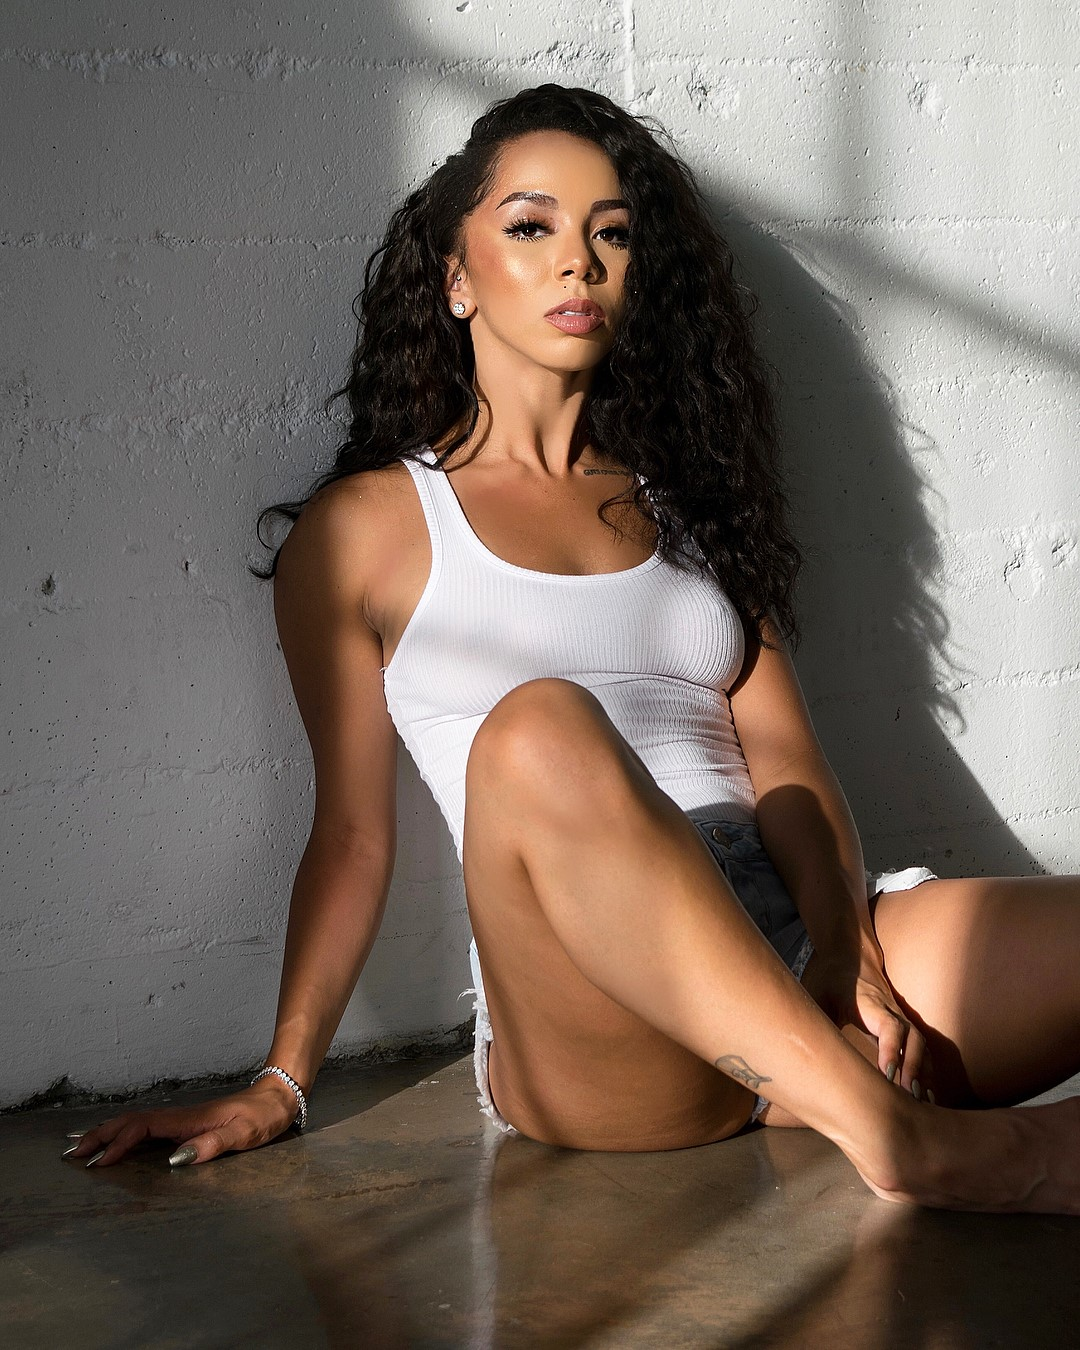 Pictures of Brittany Renner